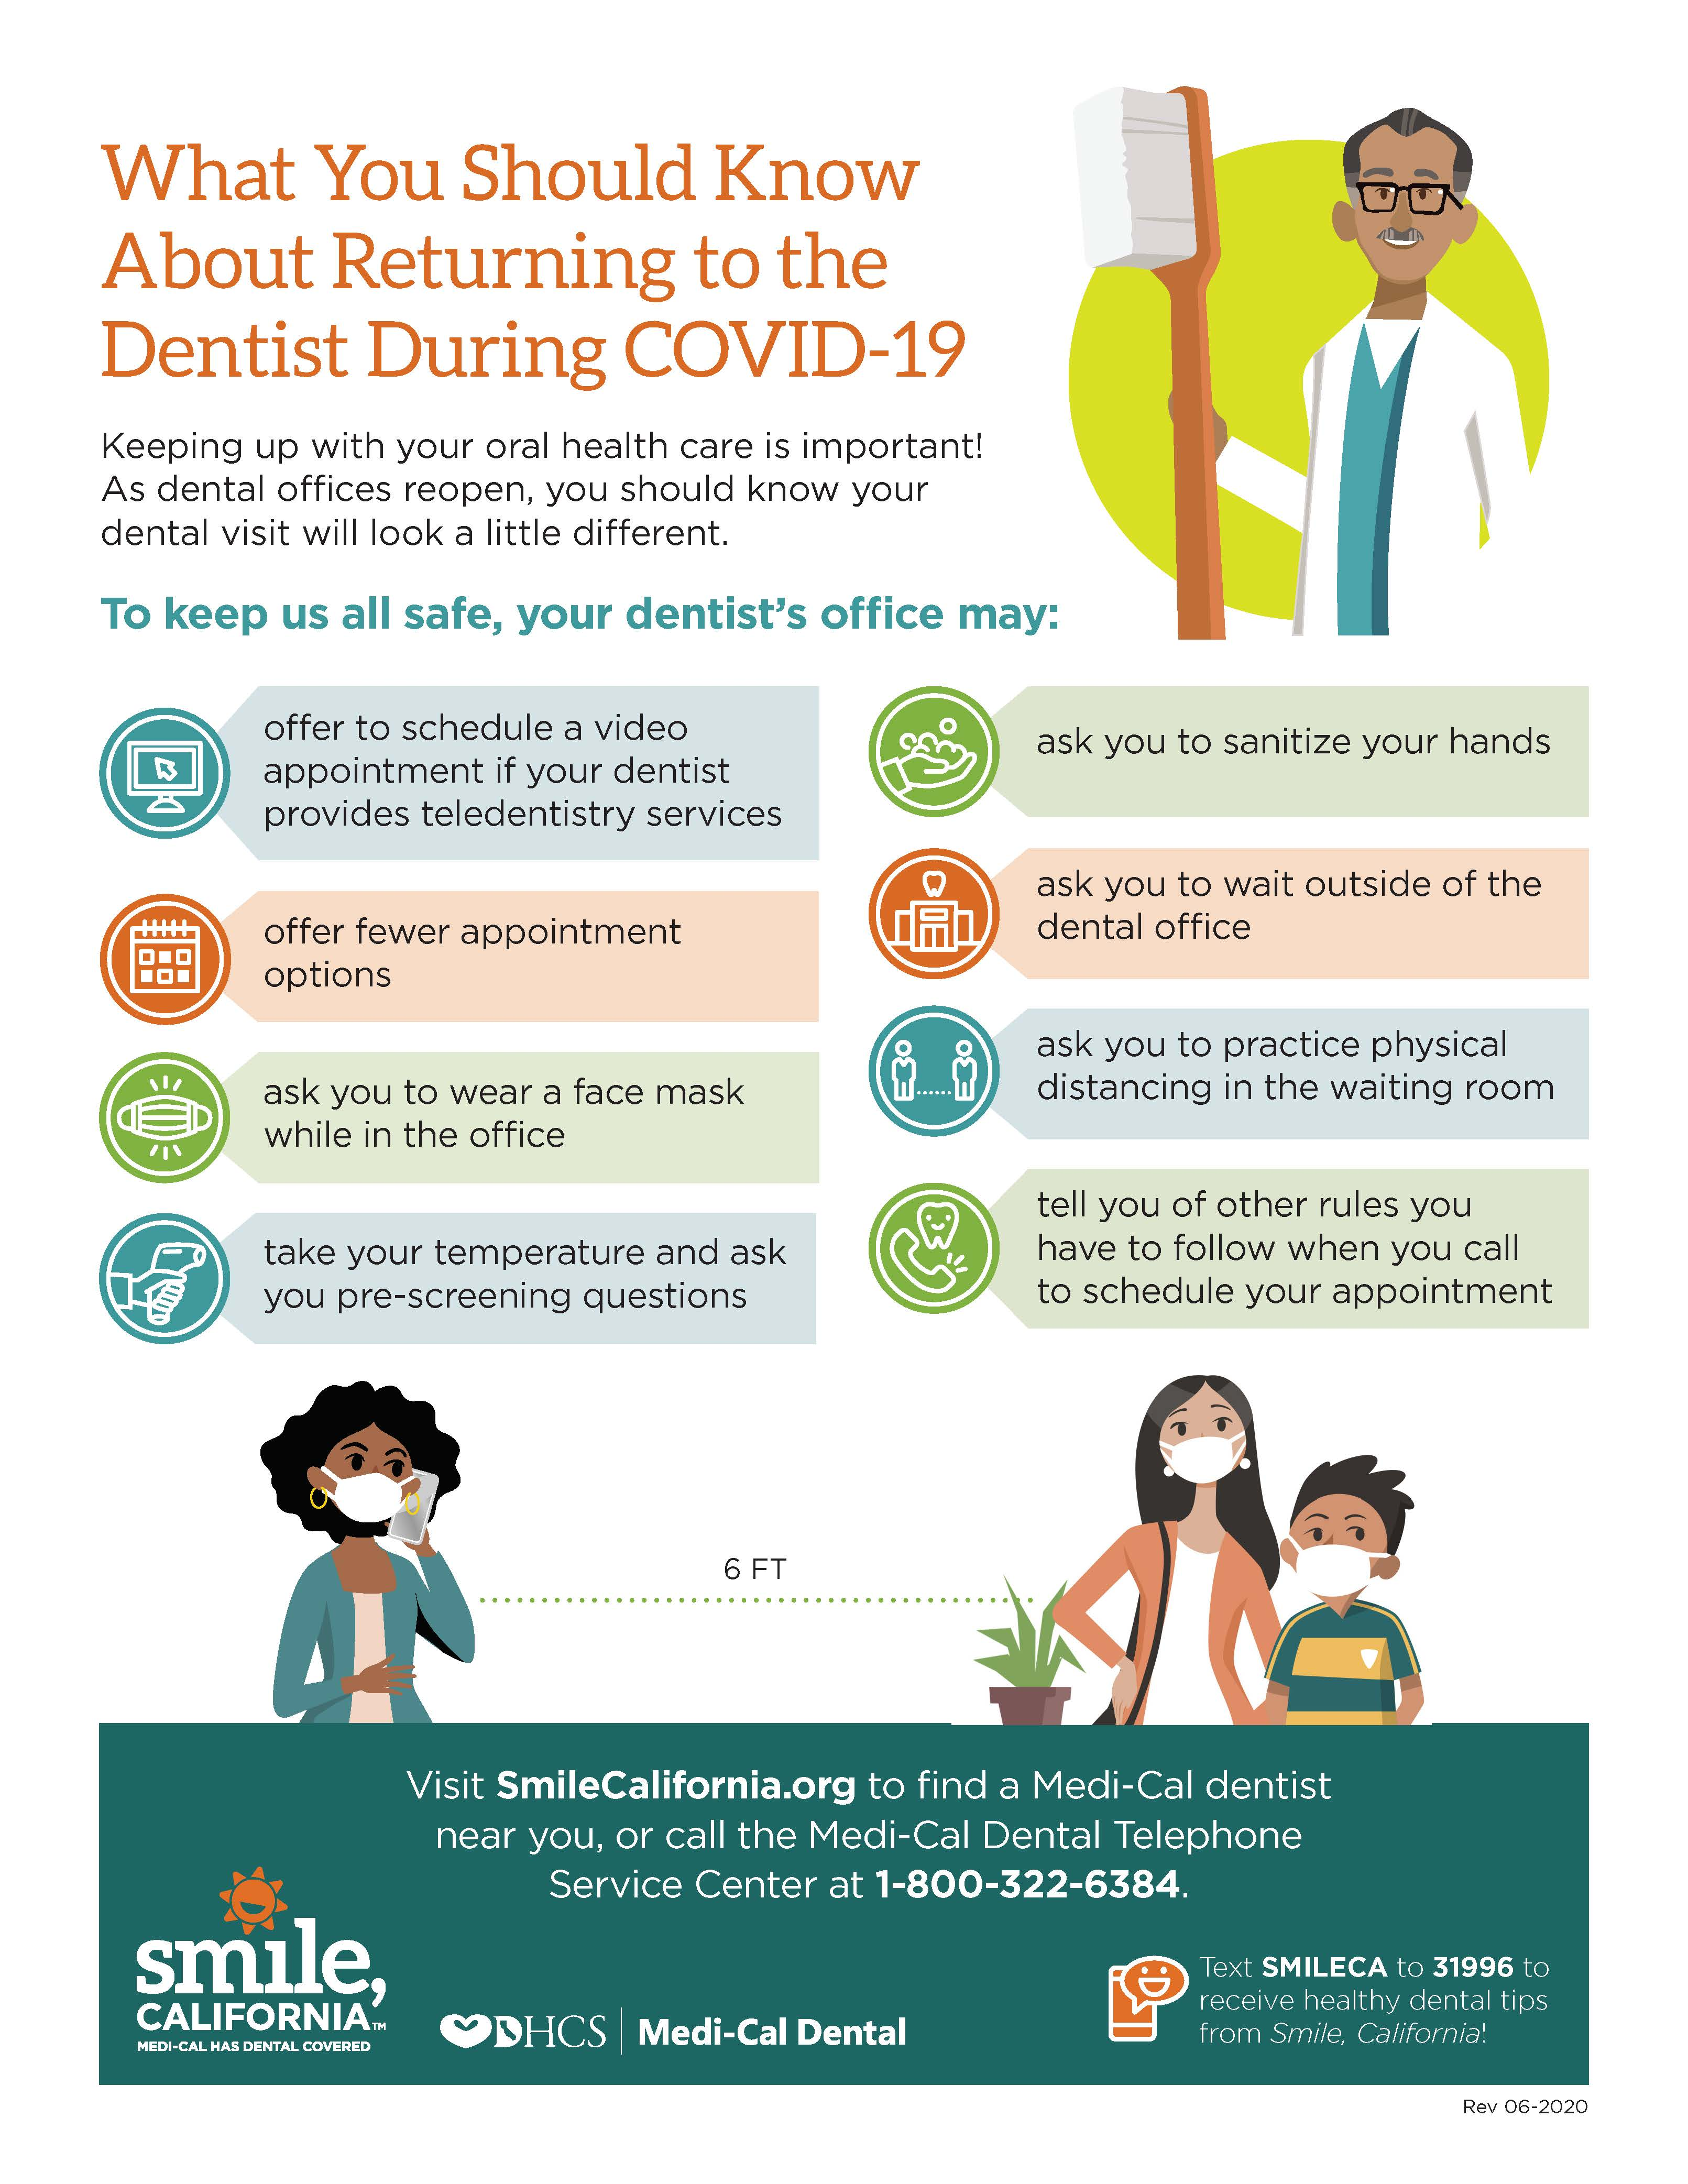 What you should know about returning to the dentist during Covid-19, click for link to .pdf